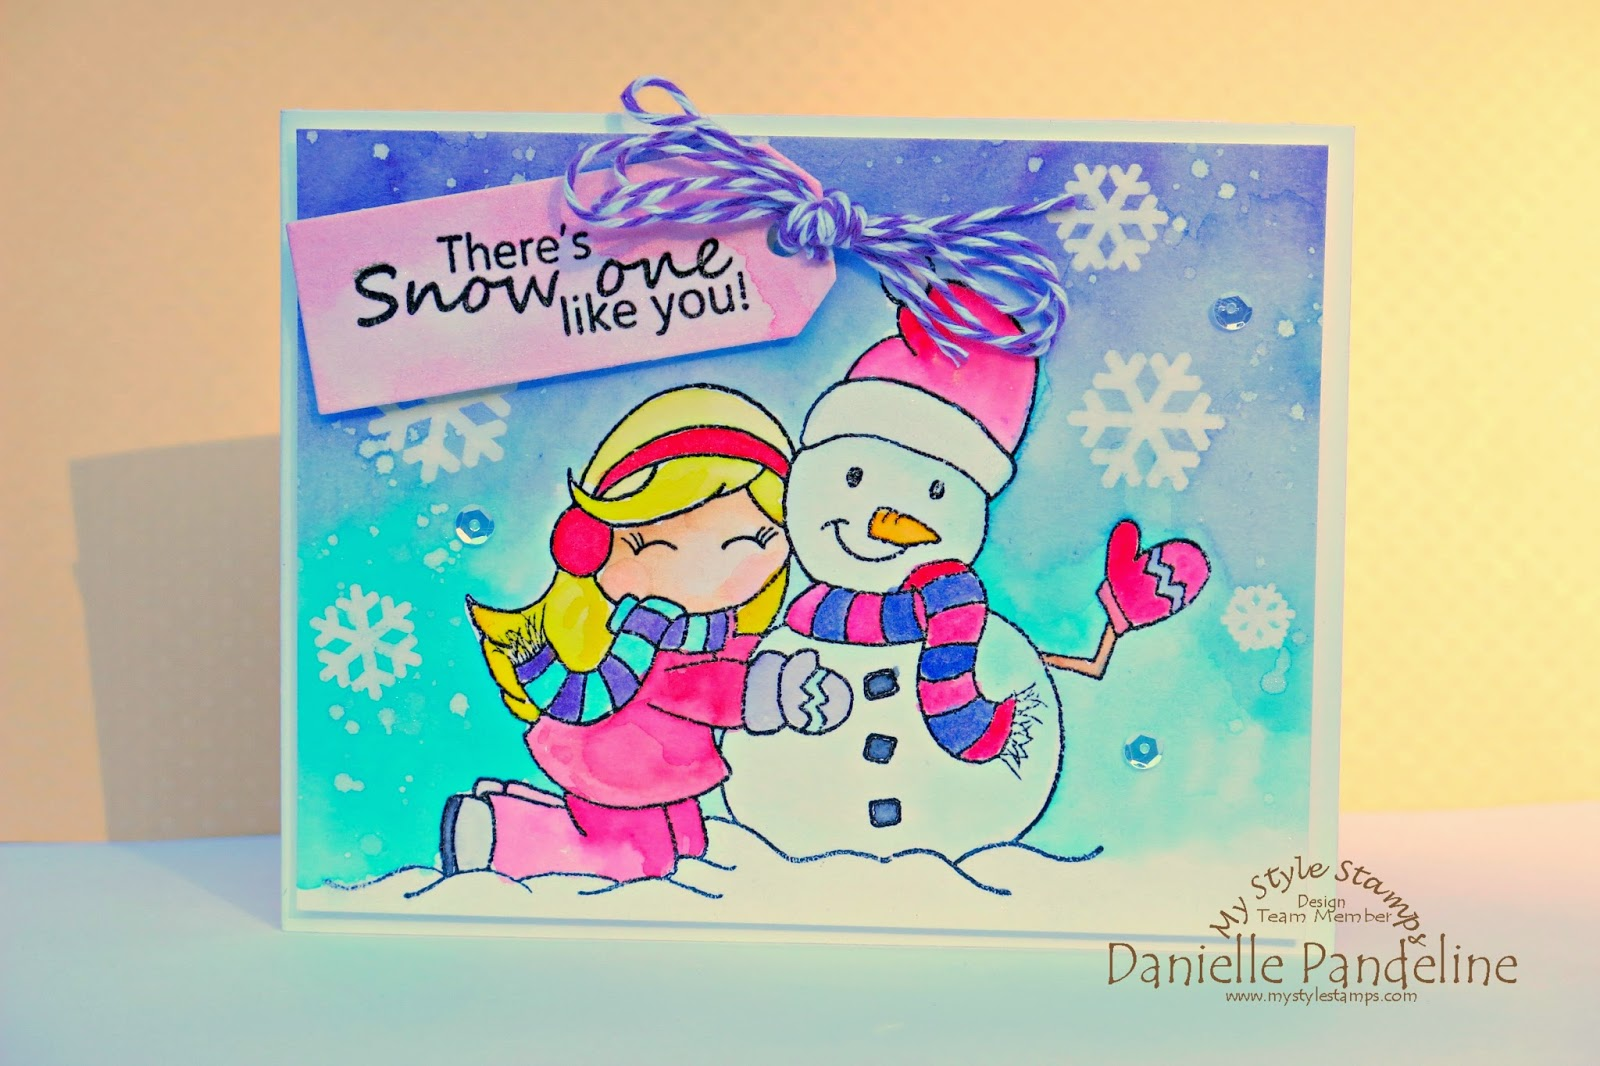 Snow One Like You | Featuring My Style Stamps | Created by Danielle Pandeline